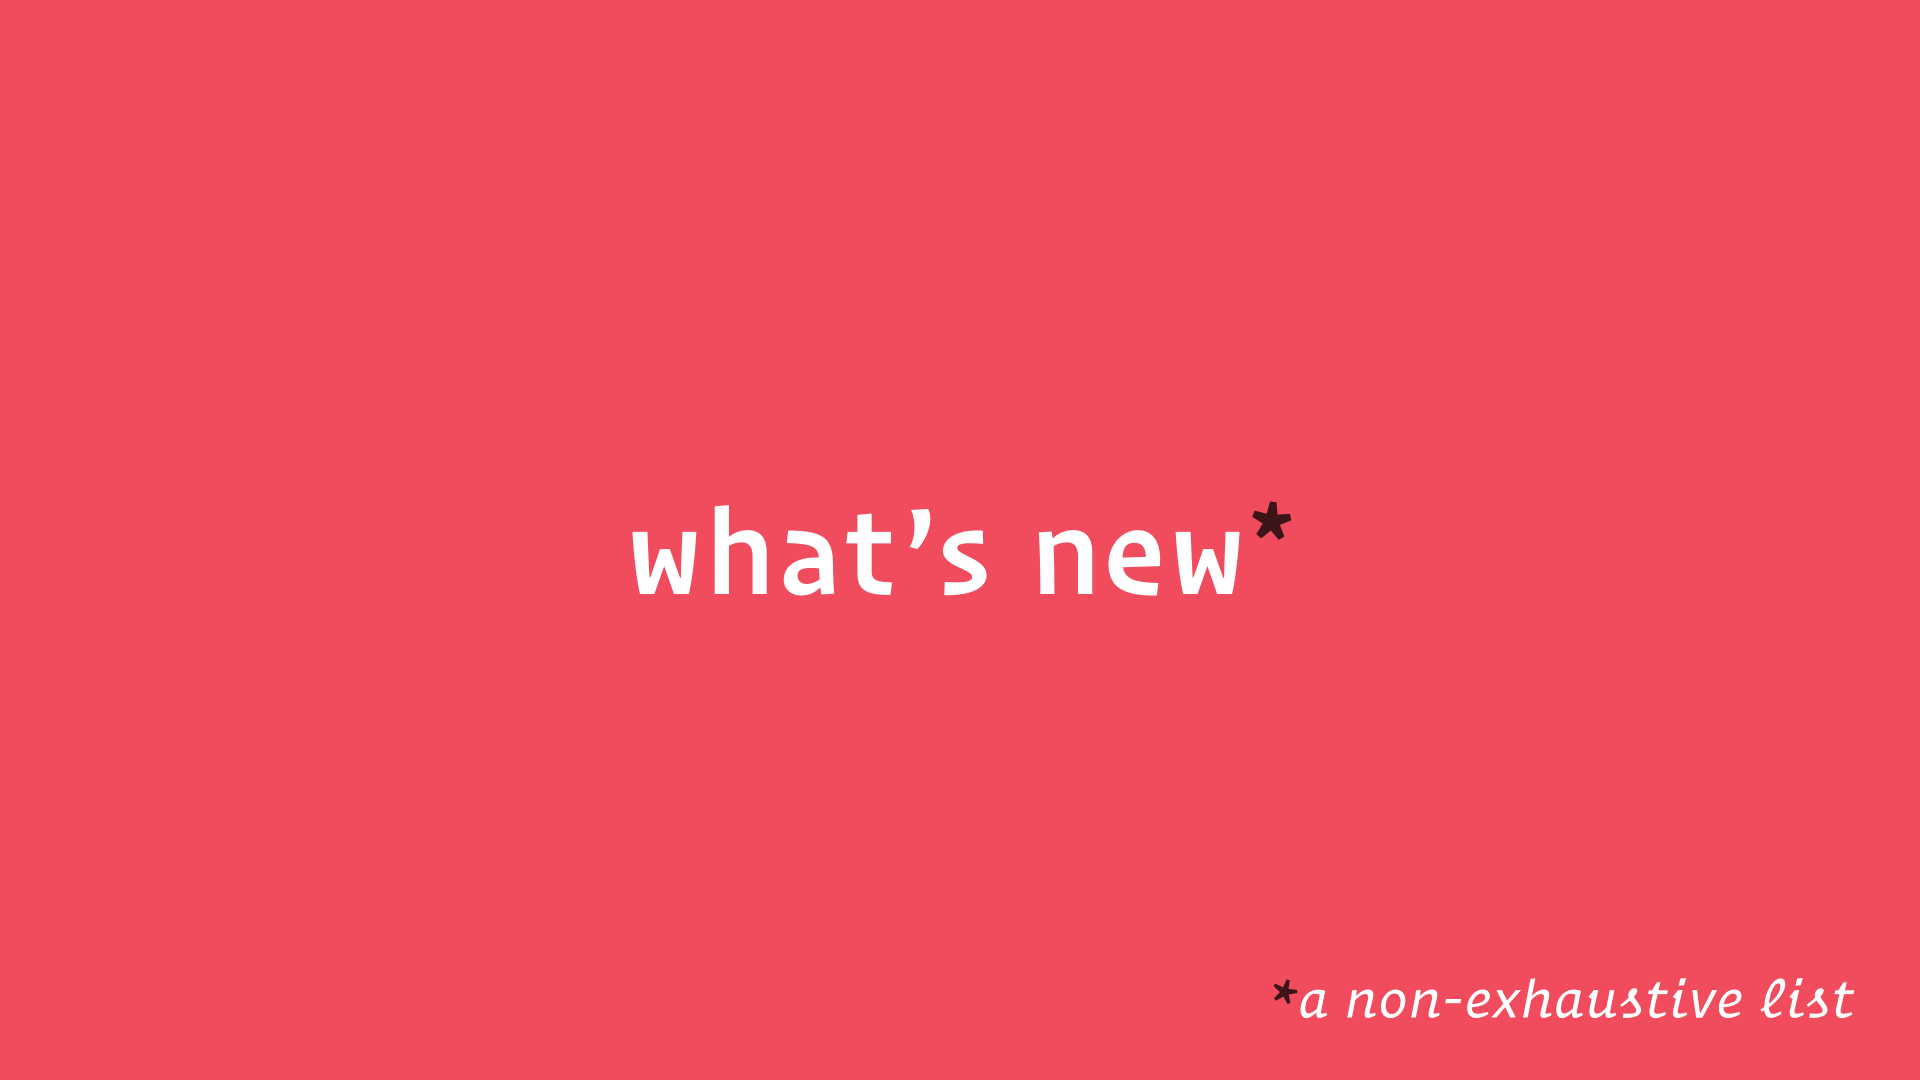 slide: what's new (a non-exhaustive list)